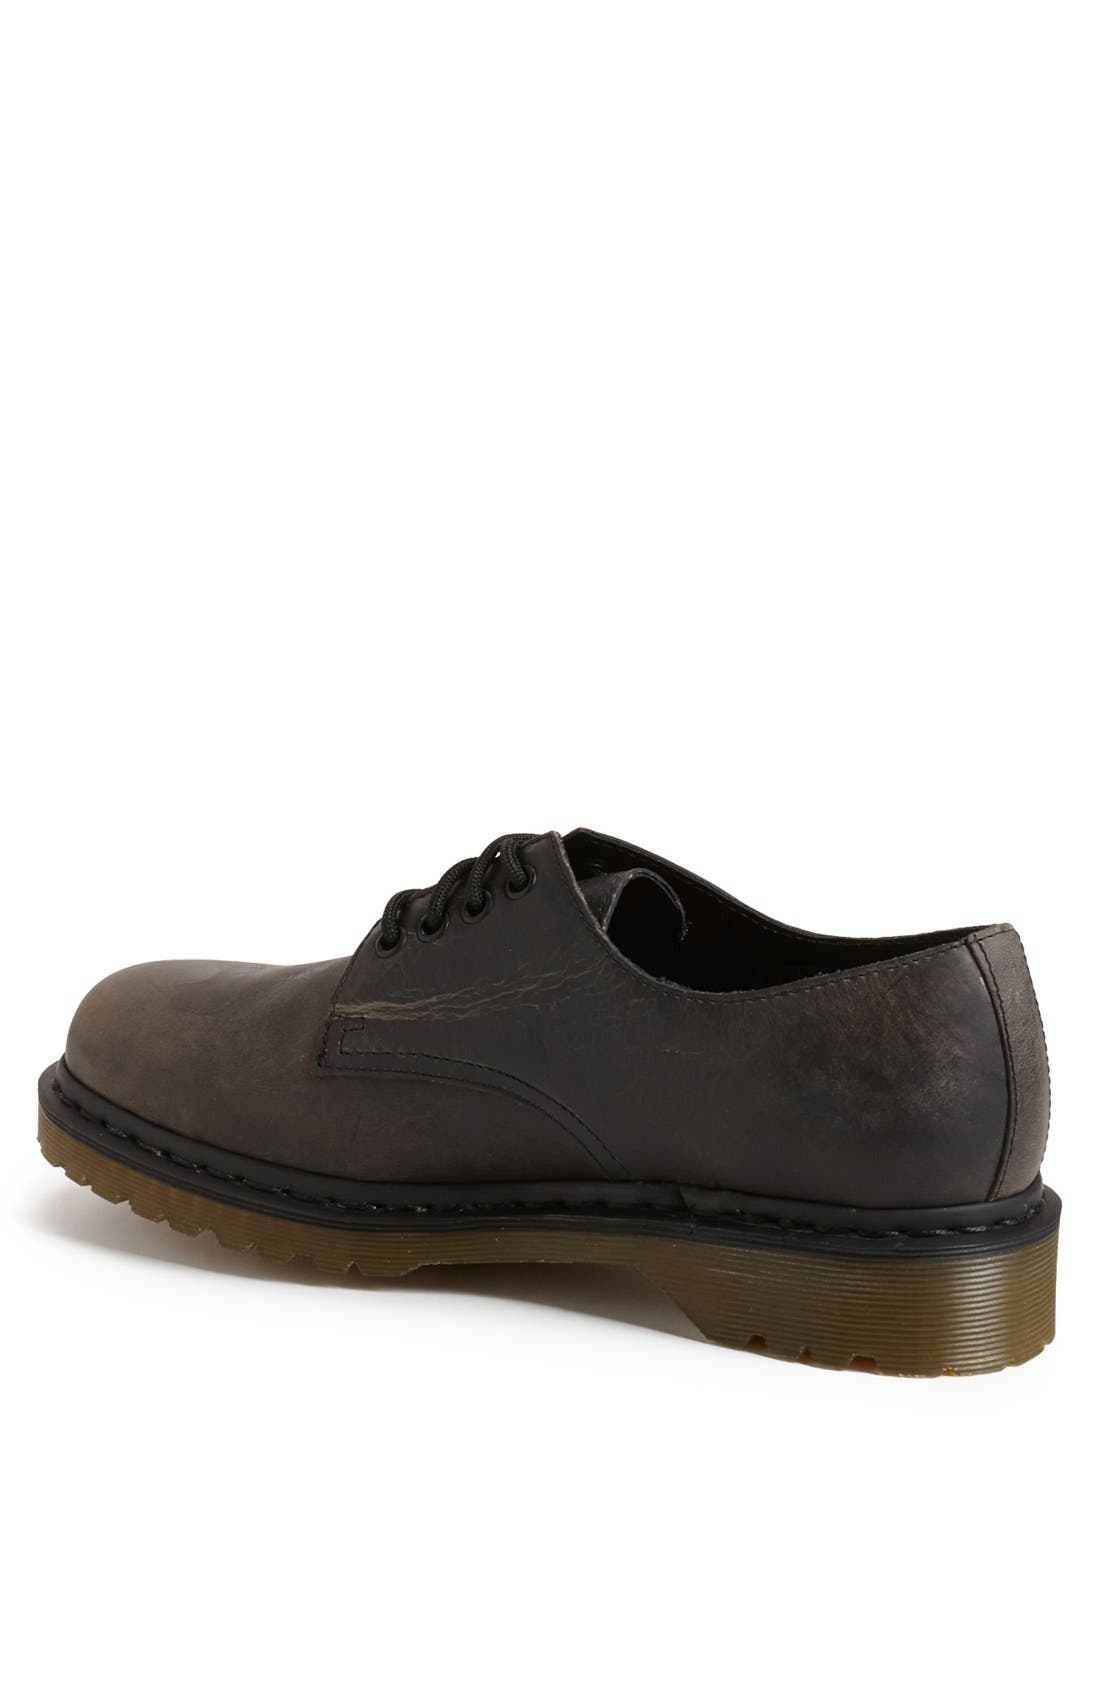 Alternate Image 2  - Dr. Martens 'Stanton' Plain Toe Derby